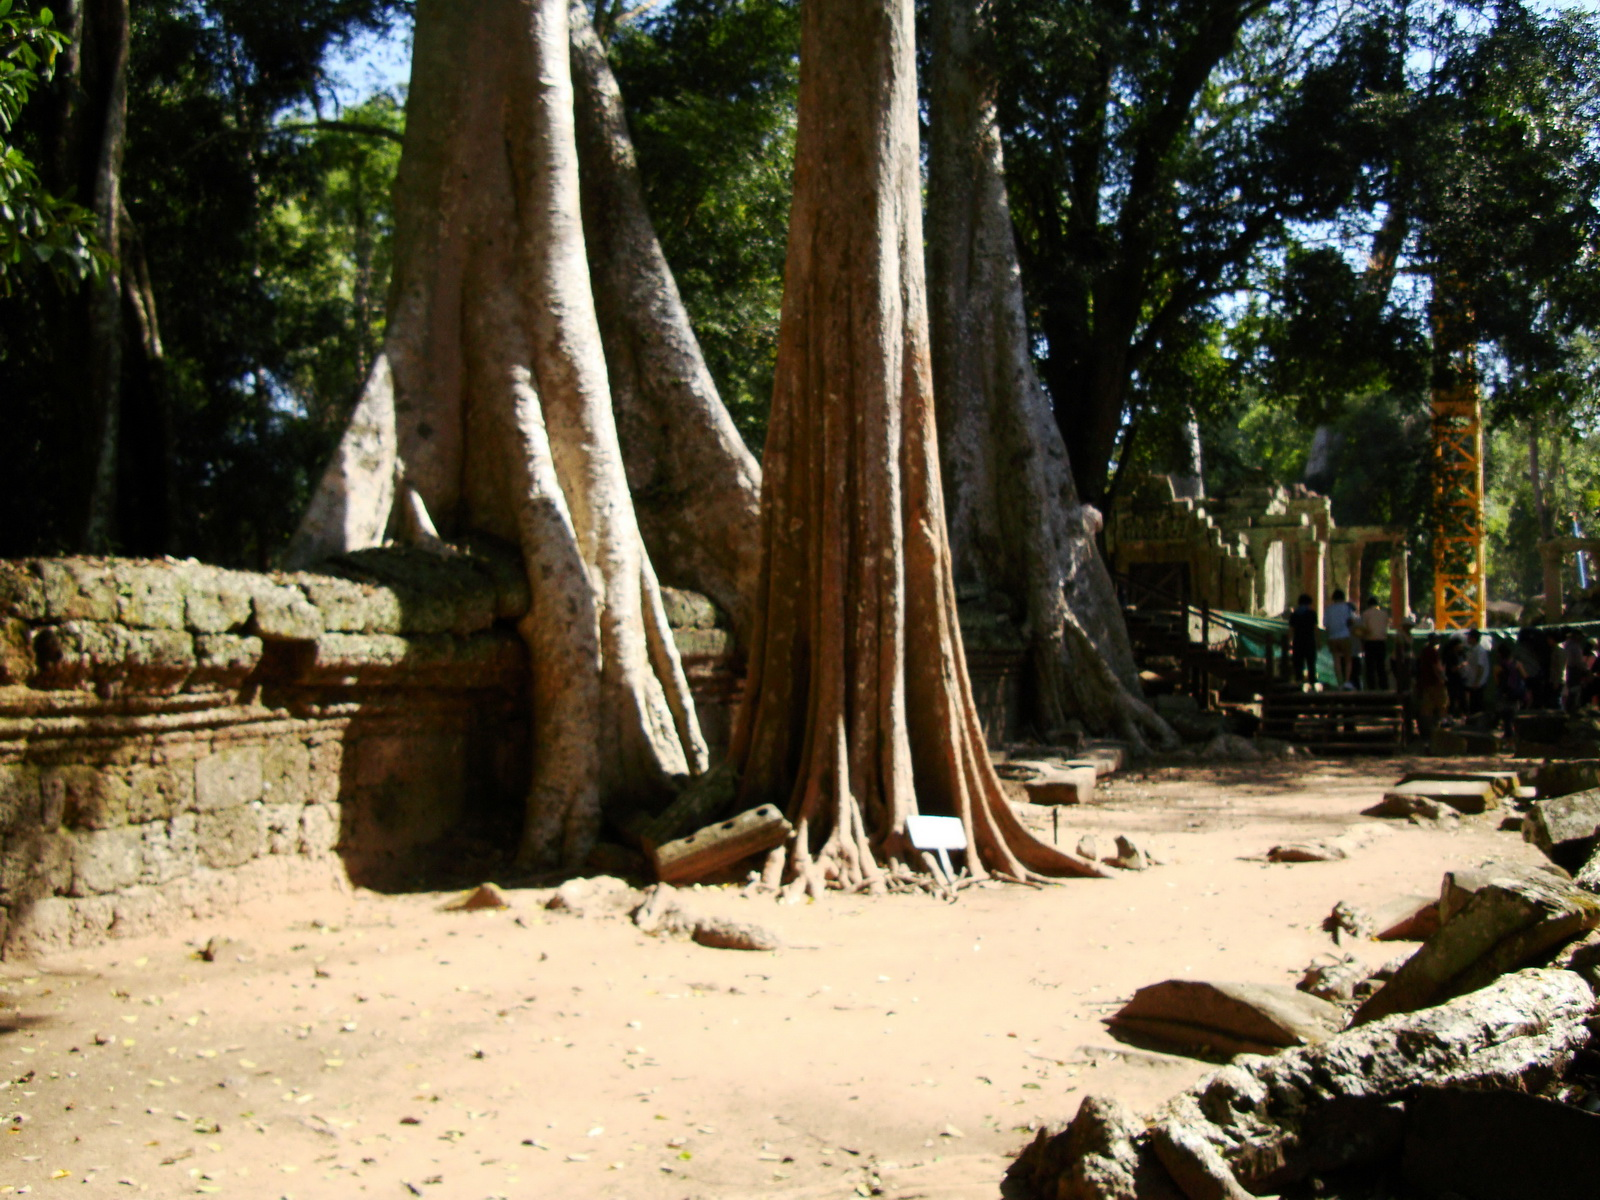 Ta Prohm Temple Tomb Raider giant trees dwaf the laterite walls 10